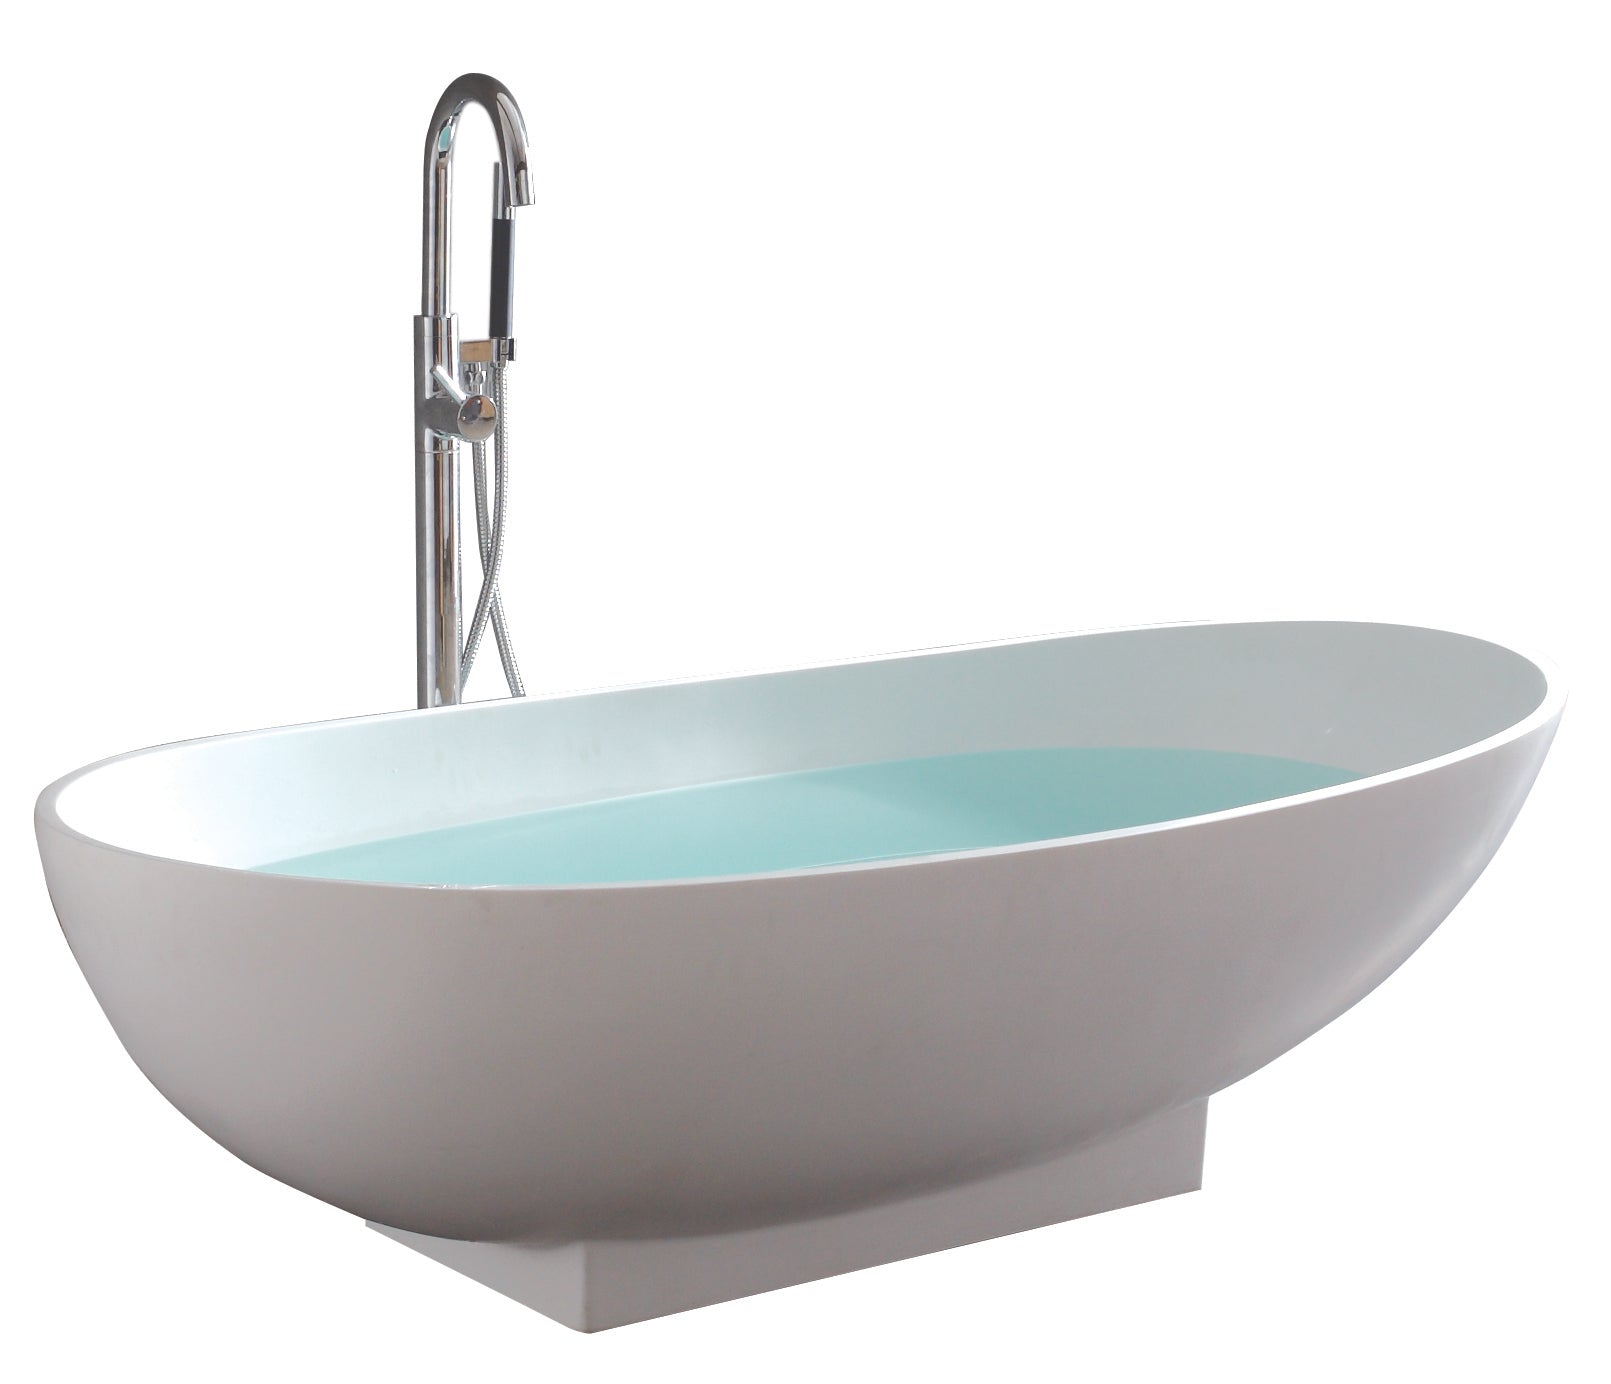 Controlbrand True Solid Surface Soaking Tub - Grace Matte [BW0156MW]